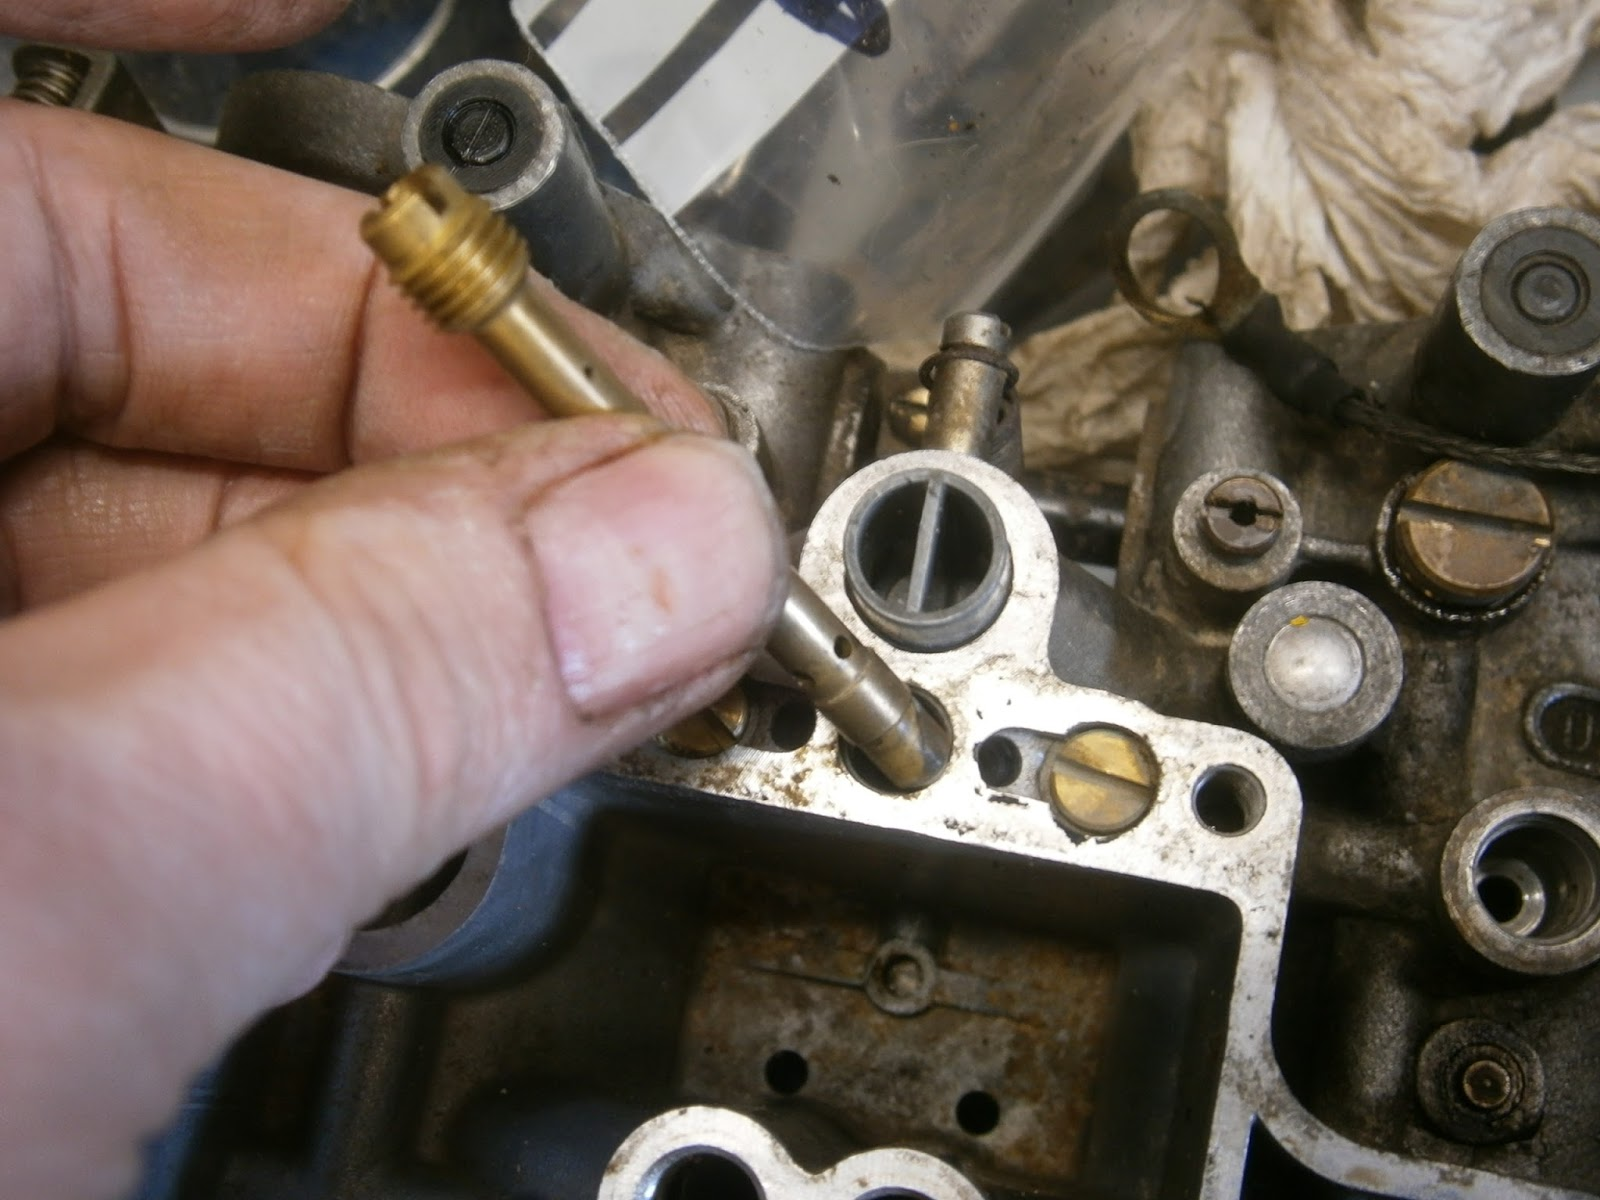 The choke emulsifier just unscrews and could be cleaned with the carb  cleaner